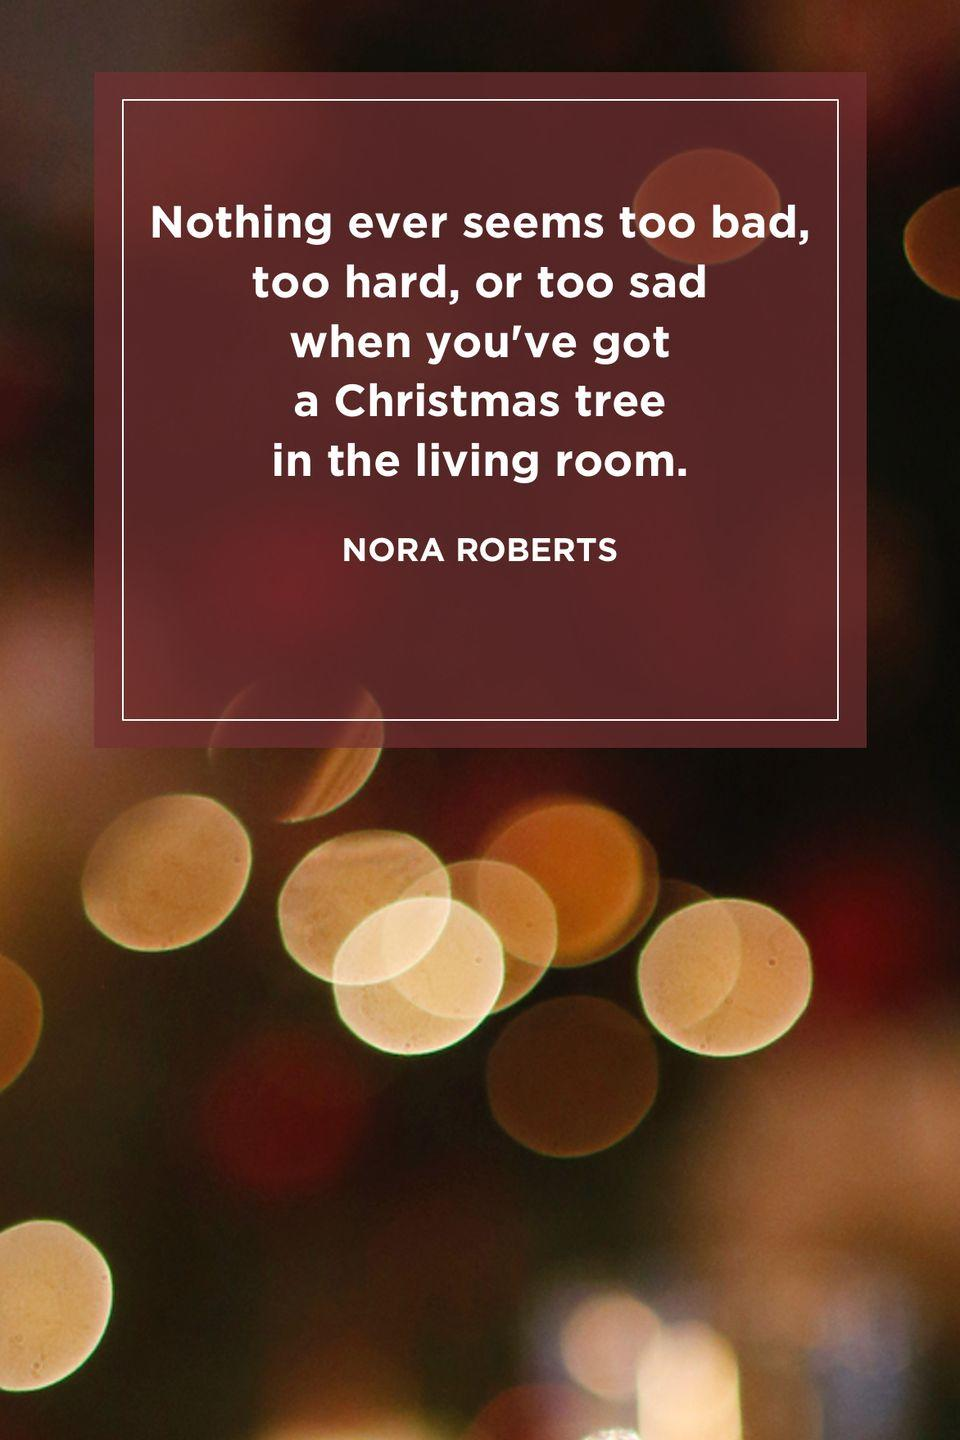 "<p>""Nothing ever seems too bad, too hard, or too sad when you've got a Christmas tree in the living room.""</p>"